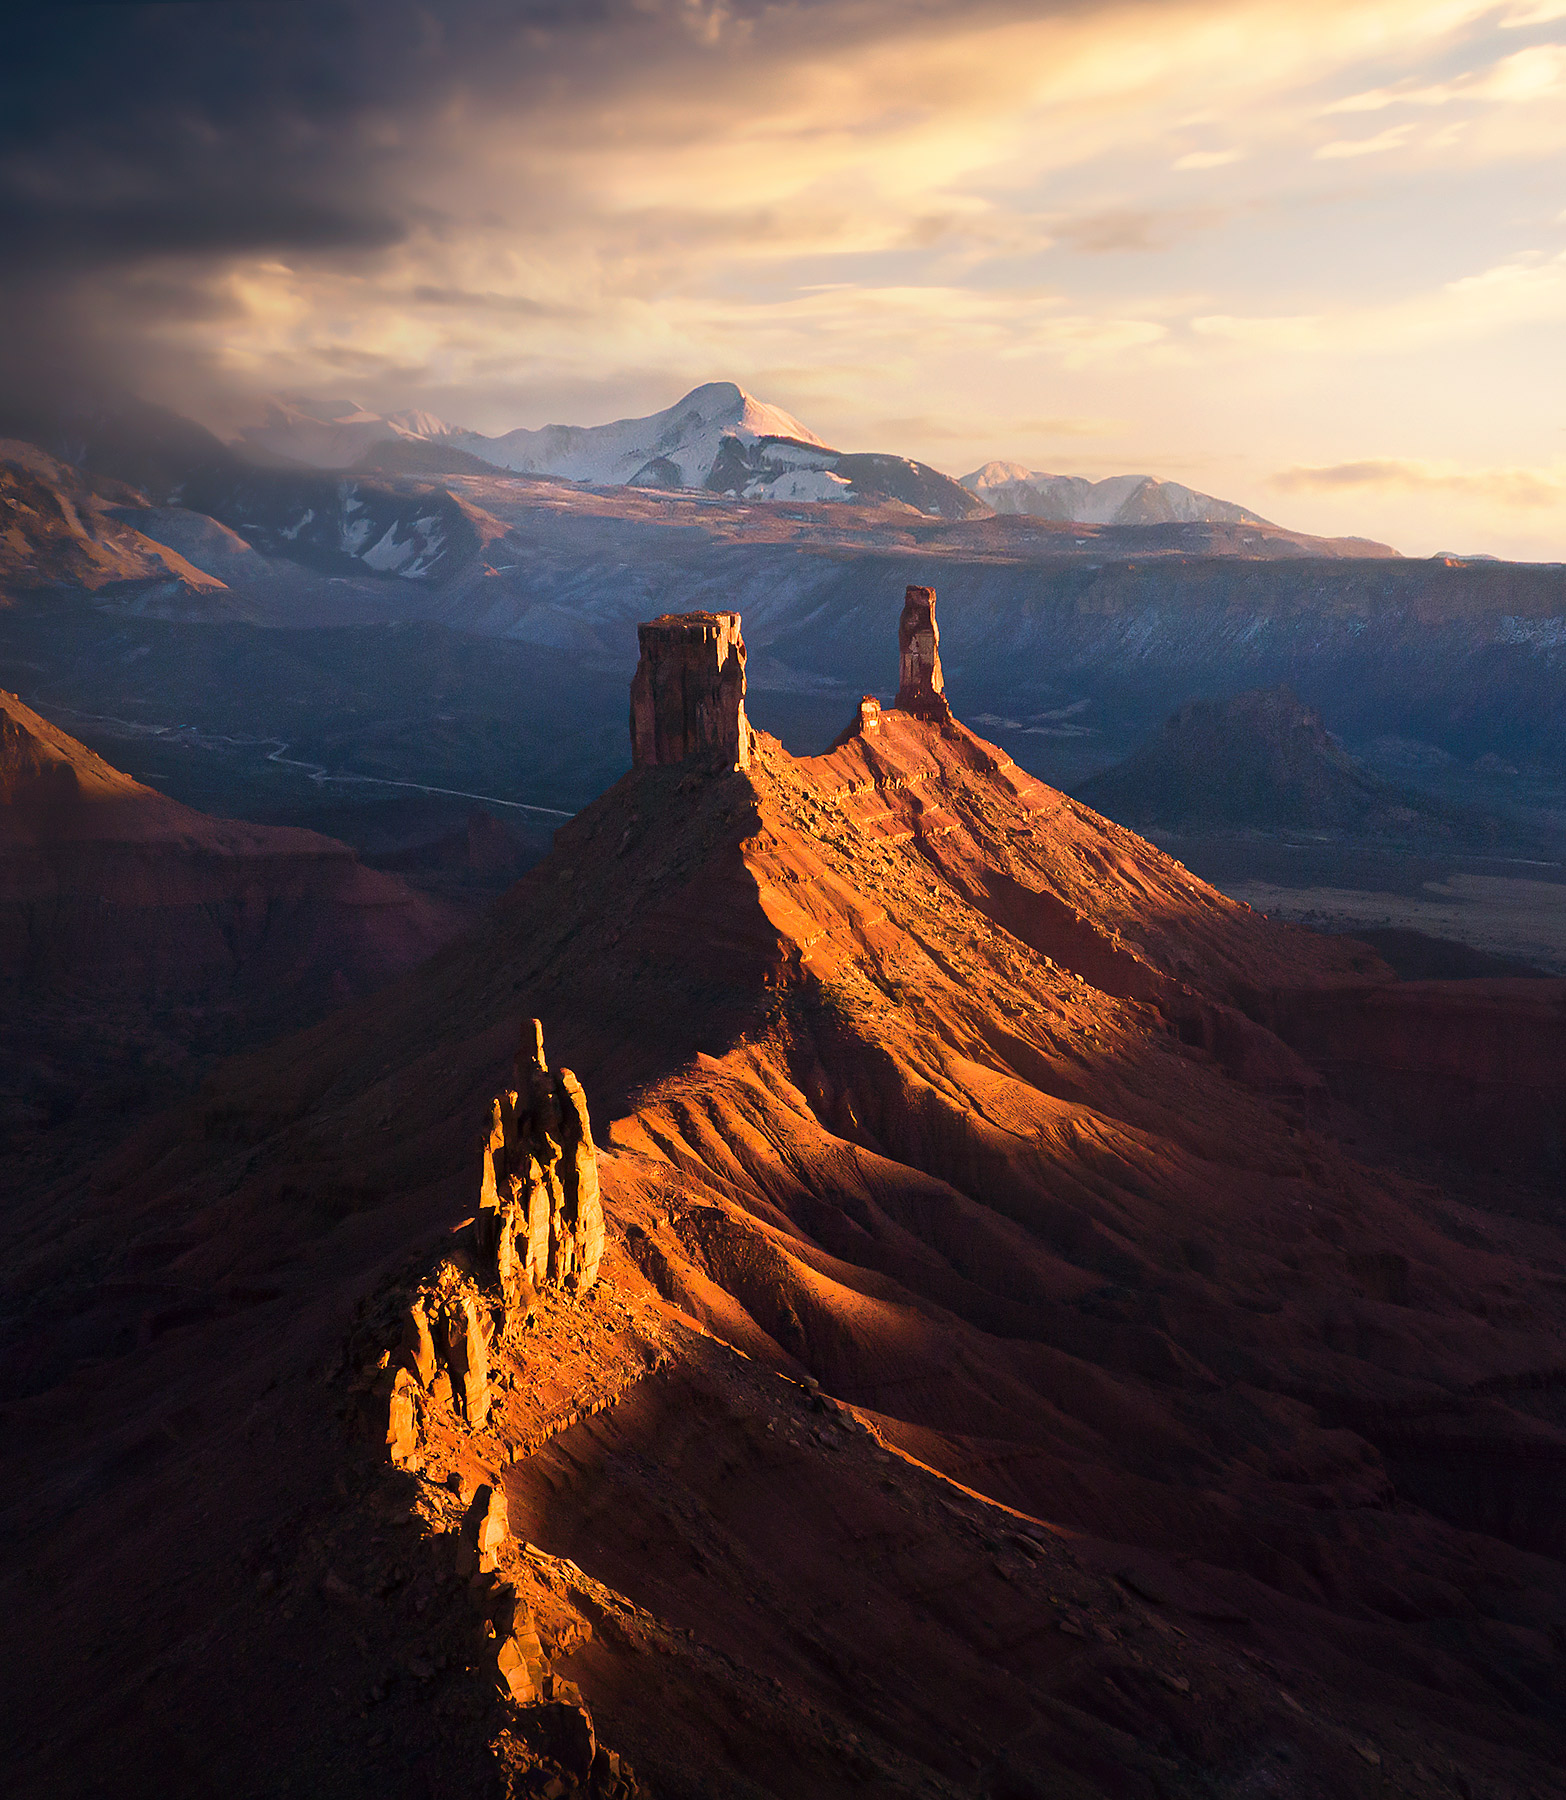 Red Rock towers adorn the Utah landscape as the snowy La Salle Range clears at sunset